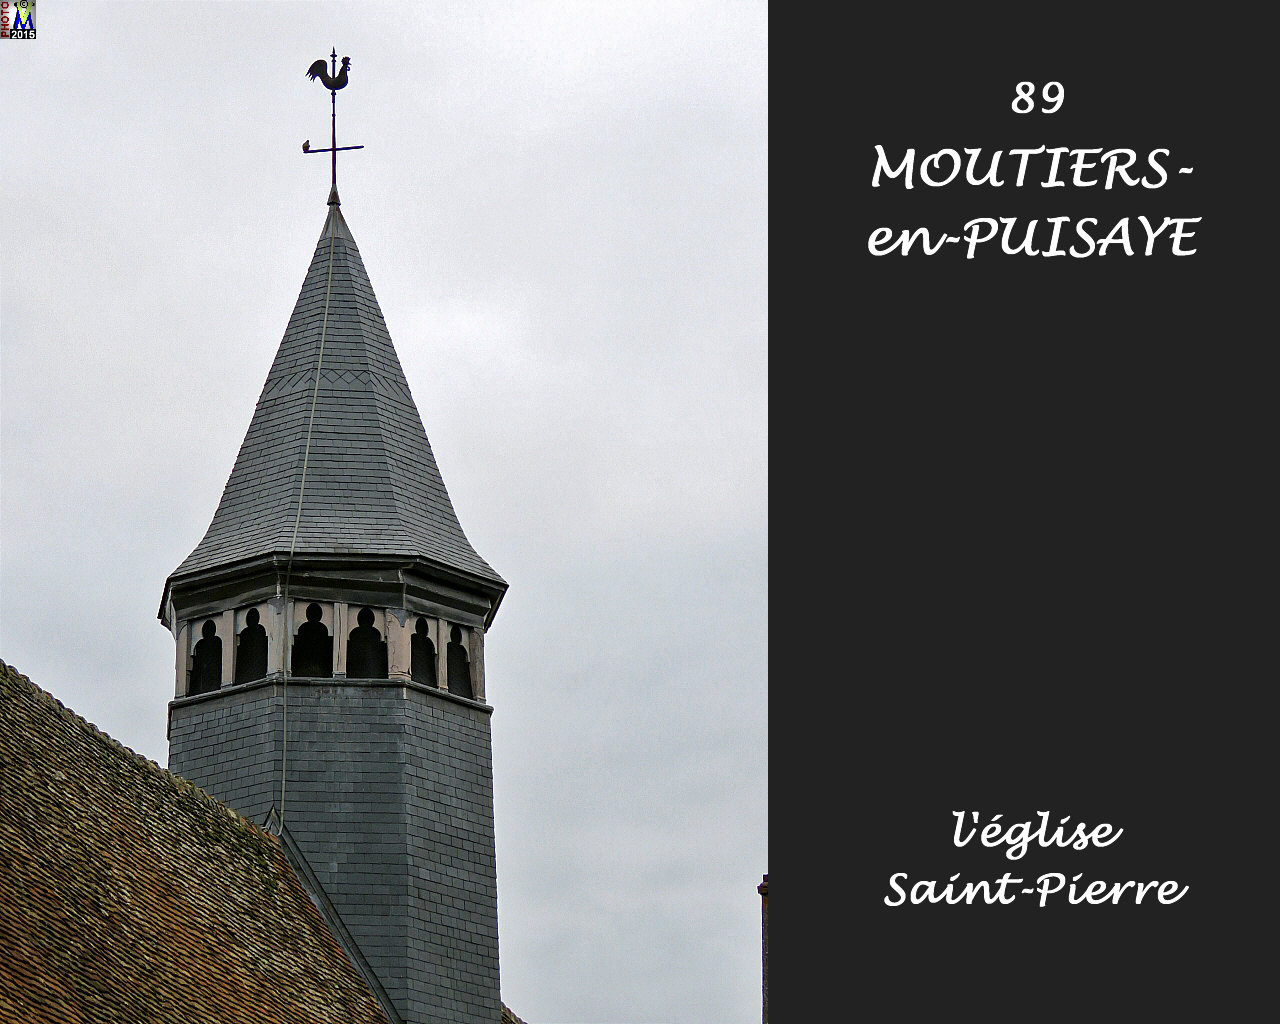 89MOUTIERS-PUISAYE_eglise_108.jpg